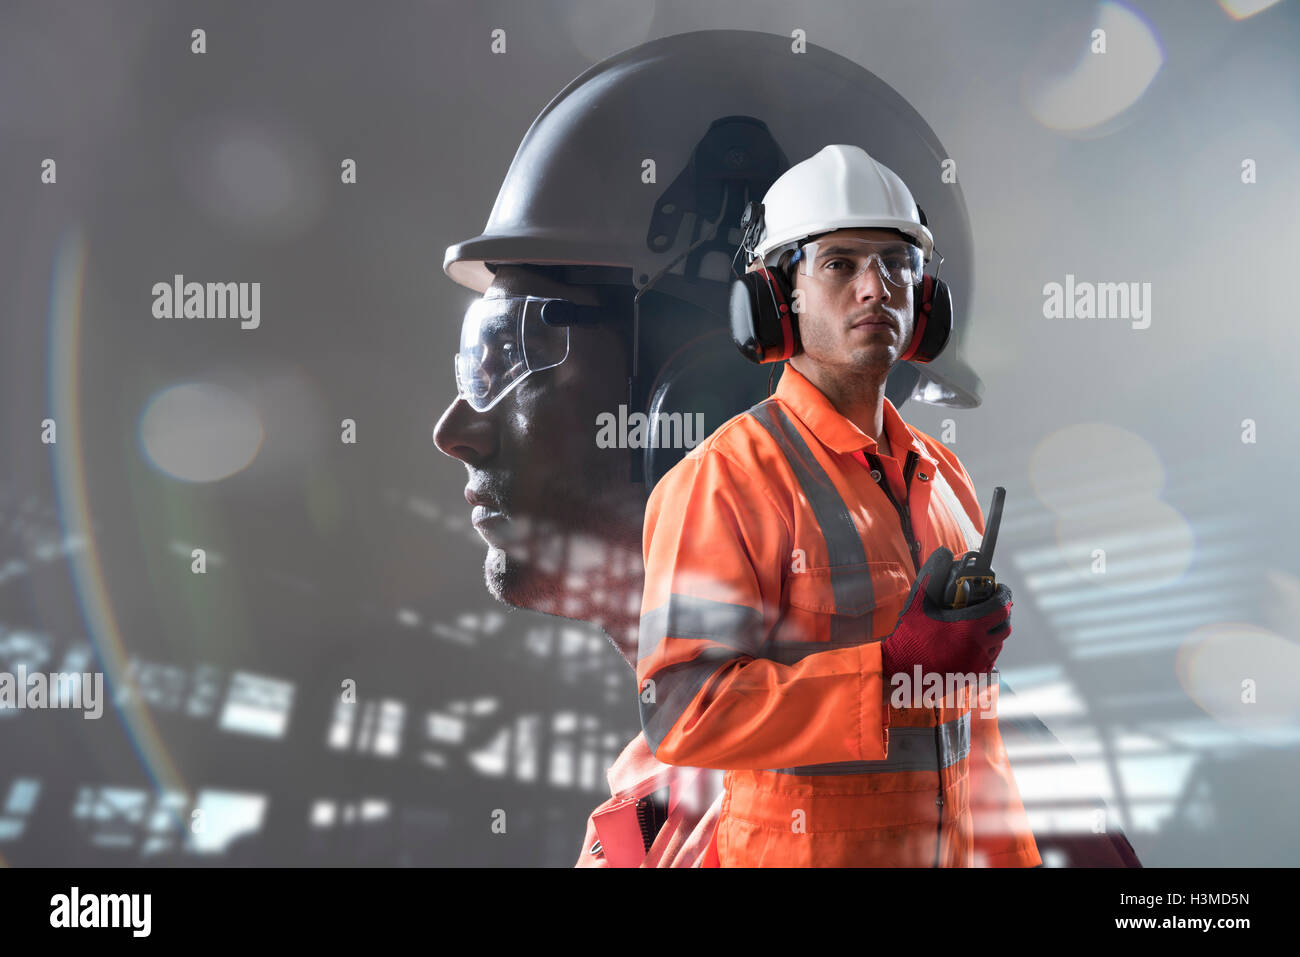 Composite image of construction worker showing full health and safety wear Stock Photo